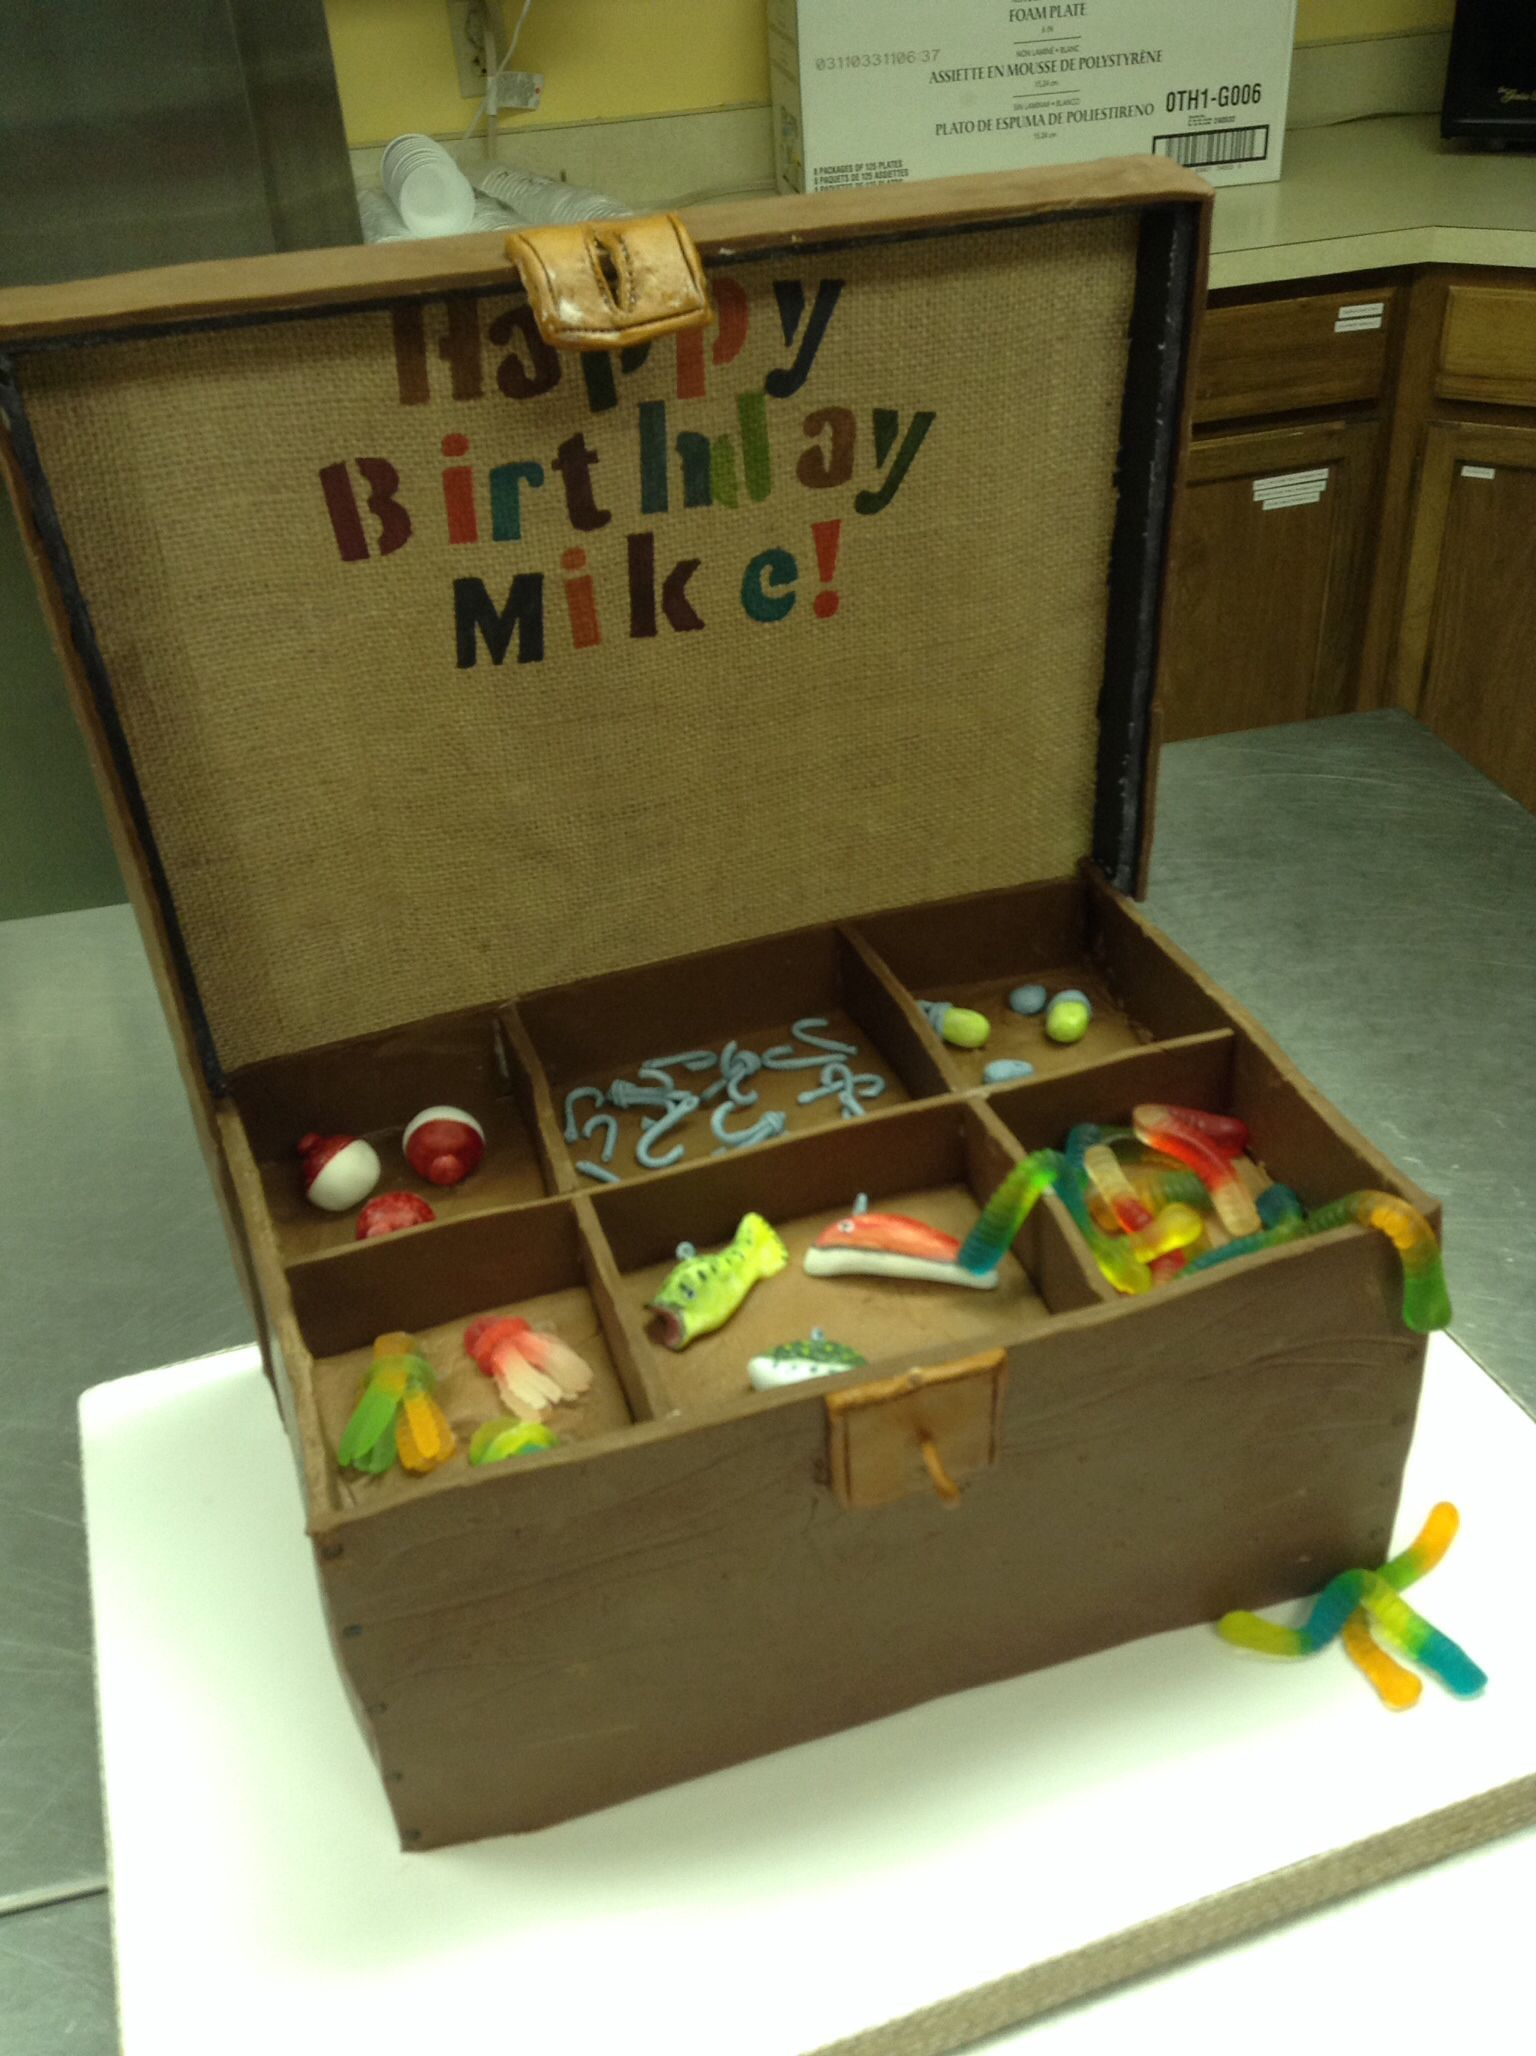 Fishing Tackle Box Cake I Made This For A Friends Birthday Who